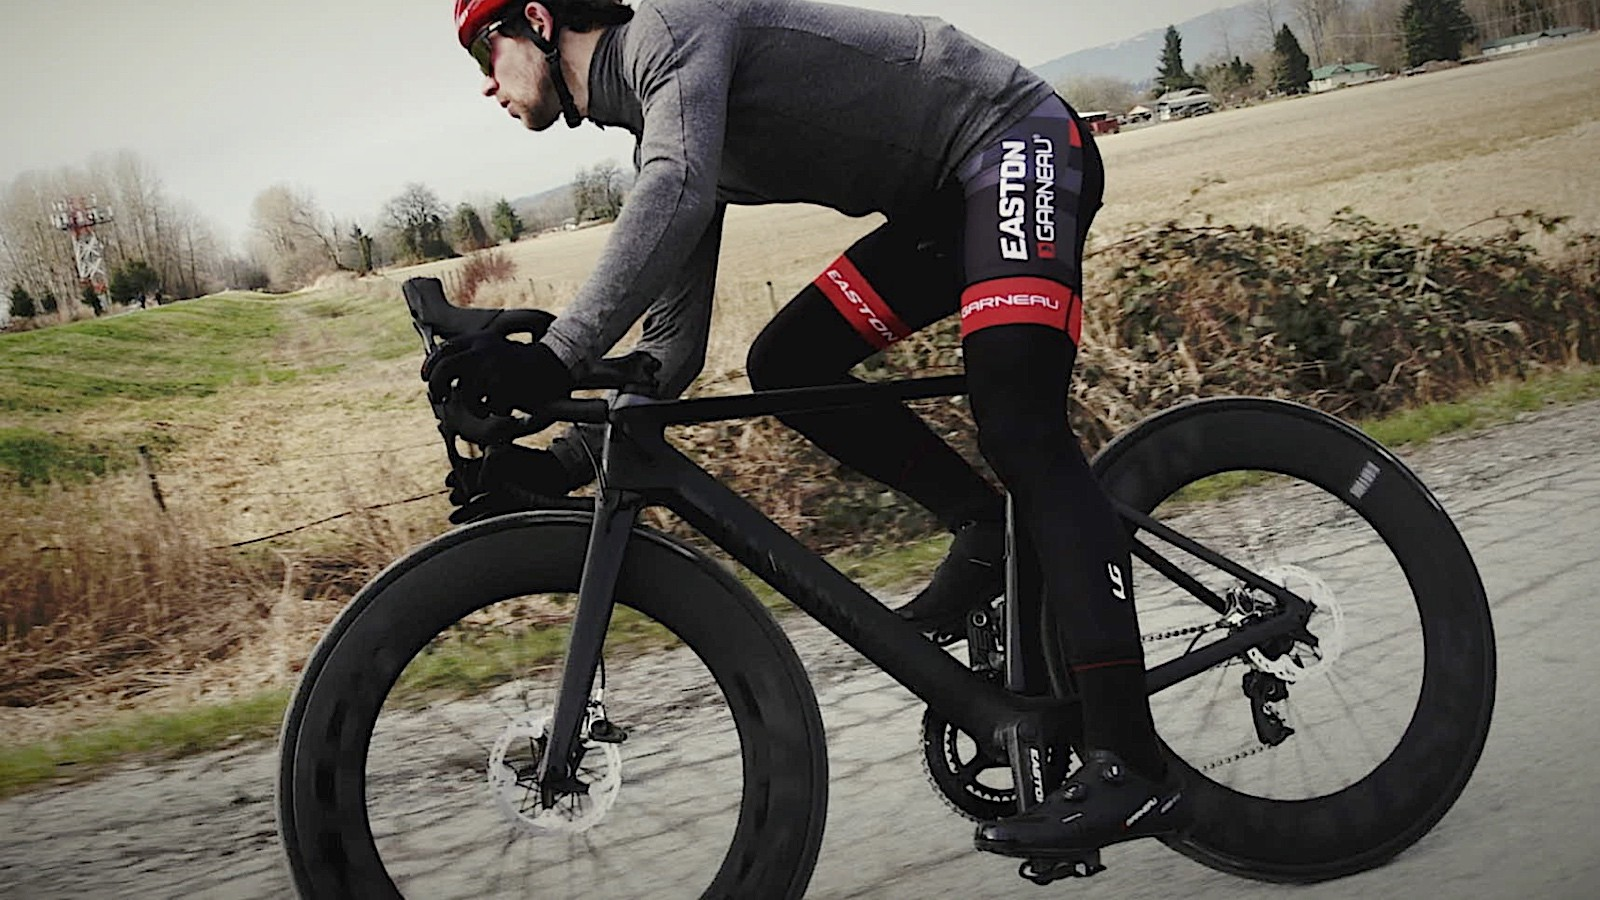 Easton's new EC90 Aero85 Disc is, as the name implies, 85mm tall and hydraulic-ready